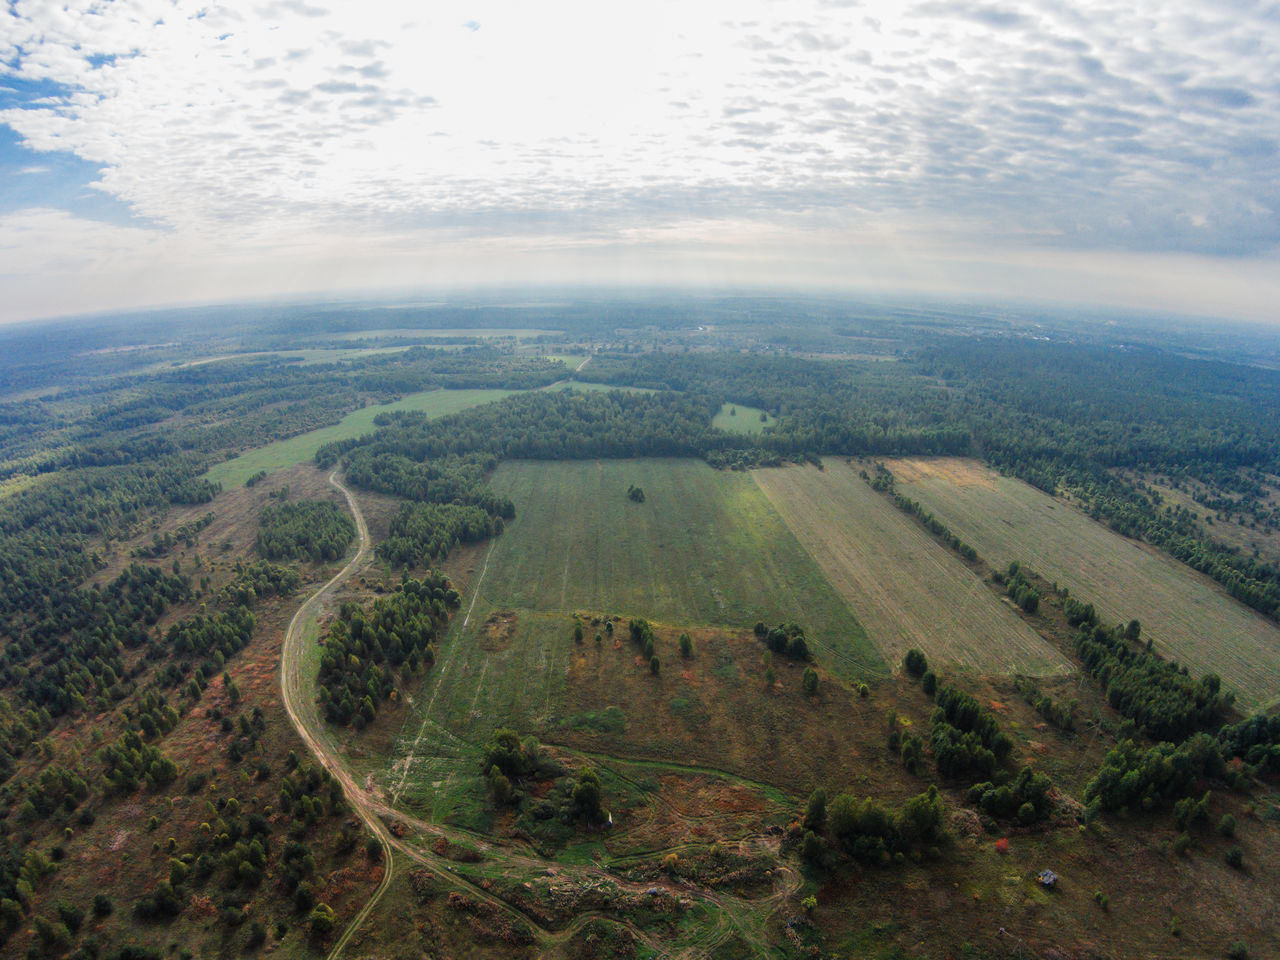 Morning haze over the land. View on the field and the forest of the Tver region. A Bird's Eye View Aerial View Agriculture Beauty In Nature Day Dji Dji Phantom Dronephotography Field Green Color Growth Landscape Nature No People Outdoors Road Russia Scenics Sky Sunlight Tree